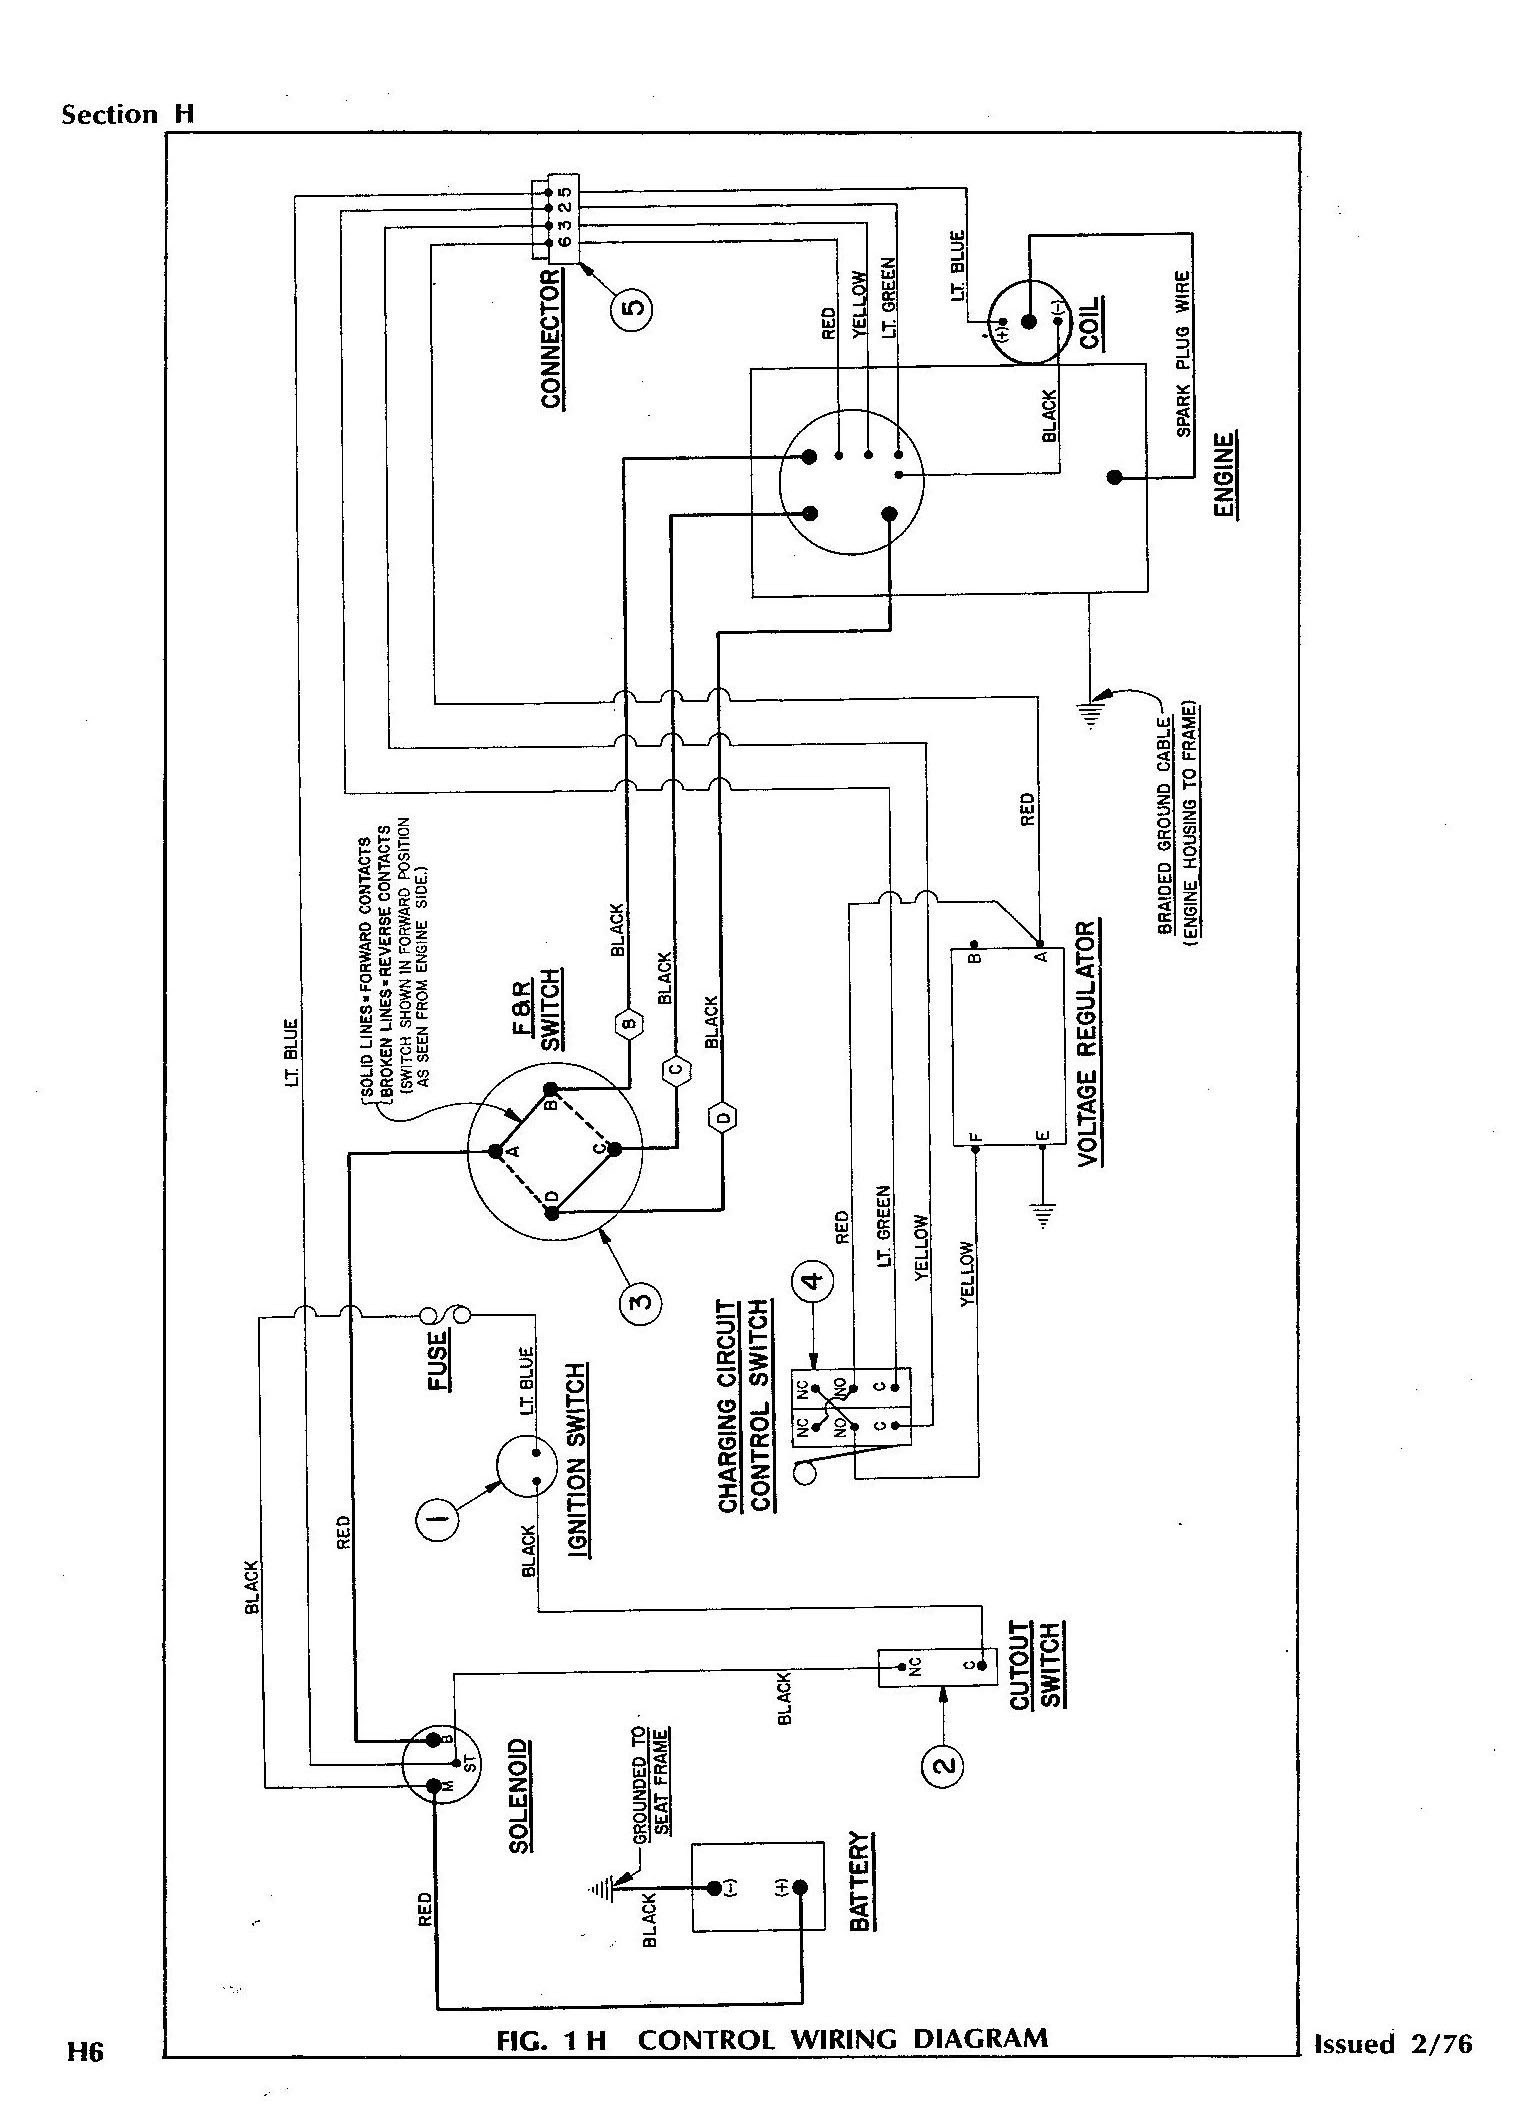 Curtis Controller Yamaha Schematic Electrical Wiring Diagrams Diagram 1204 And Schematics New